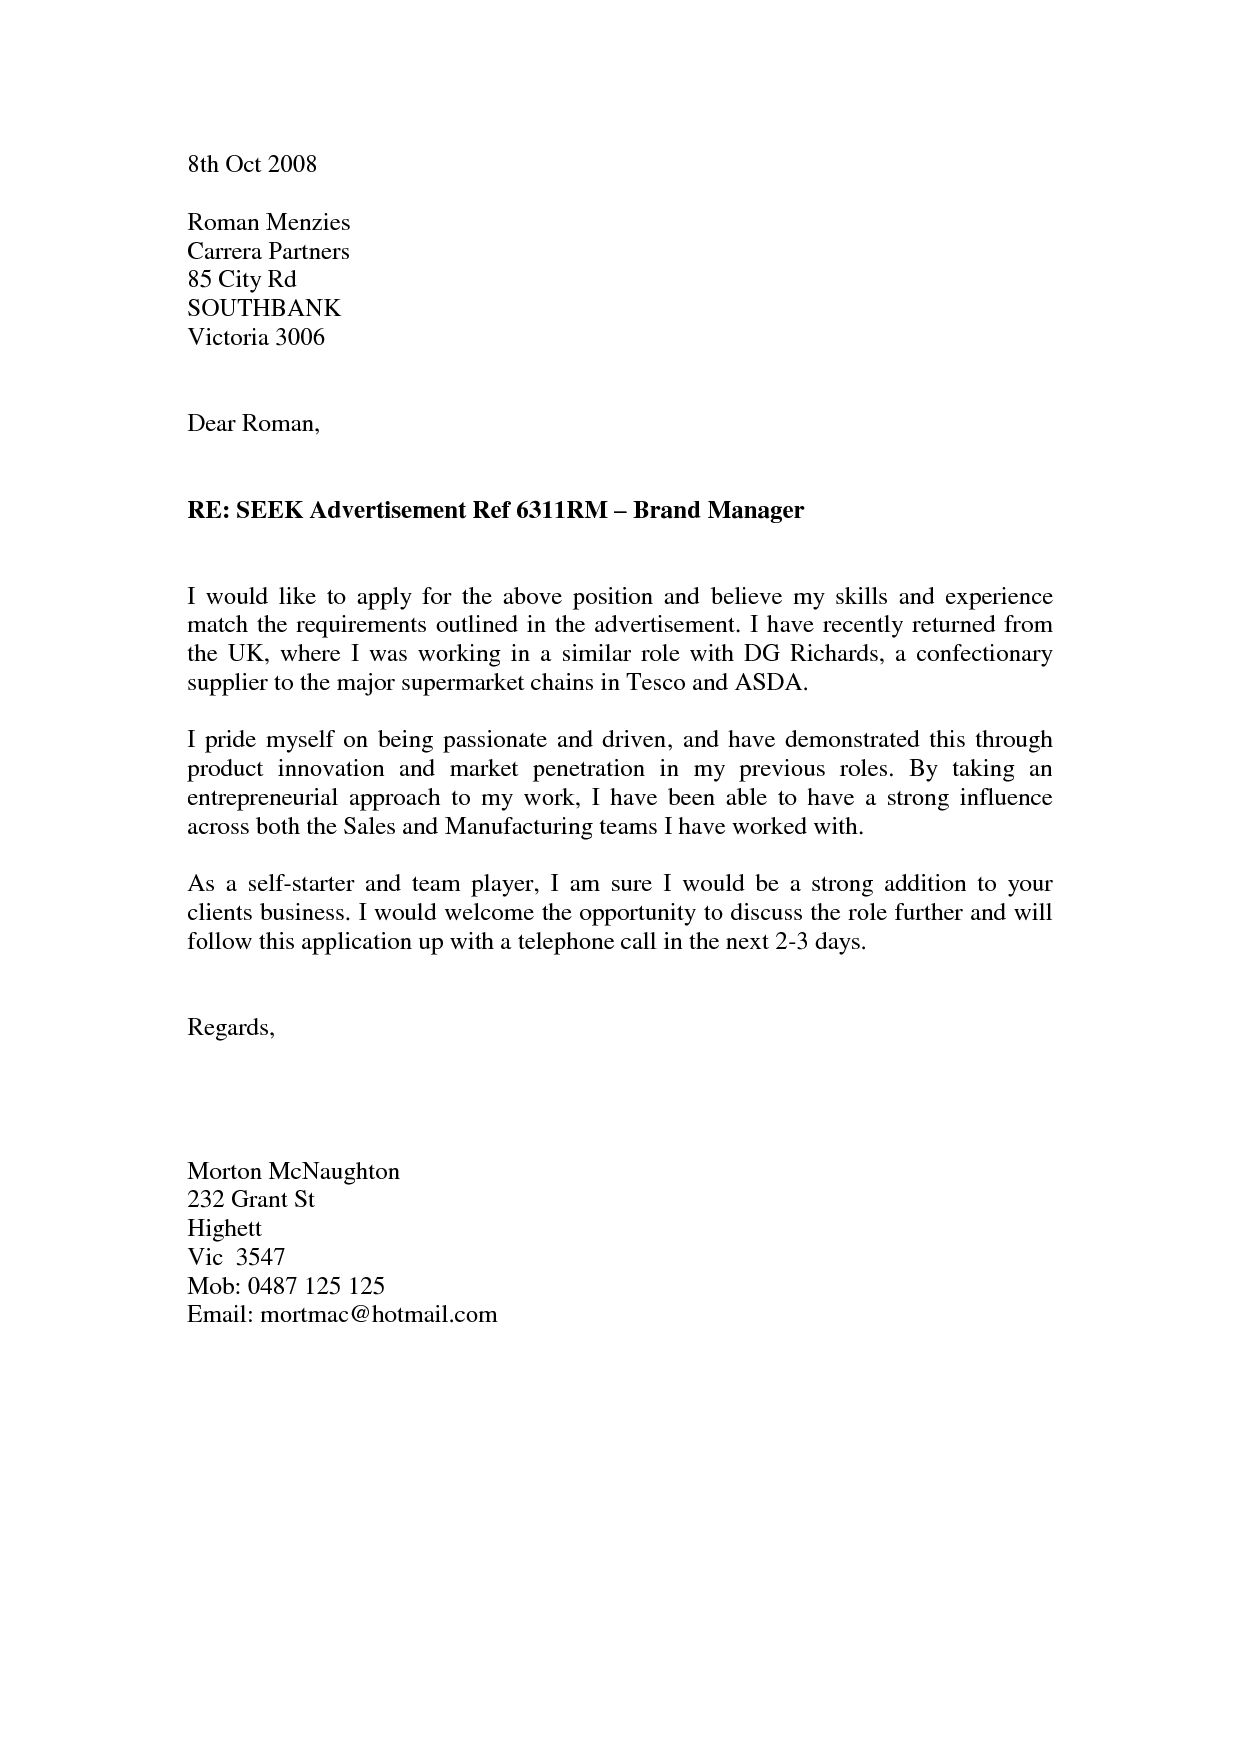 Job Application Cover Letter With No Experience Amazing Cover With Regard To Application Job Cover Letter Job Application Cover Letter Application Cover Letter